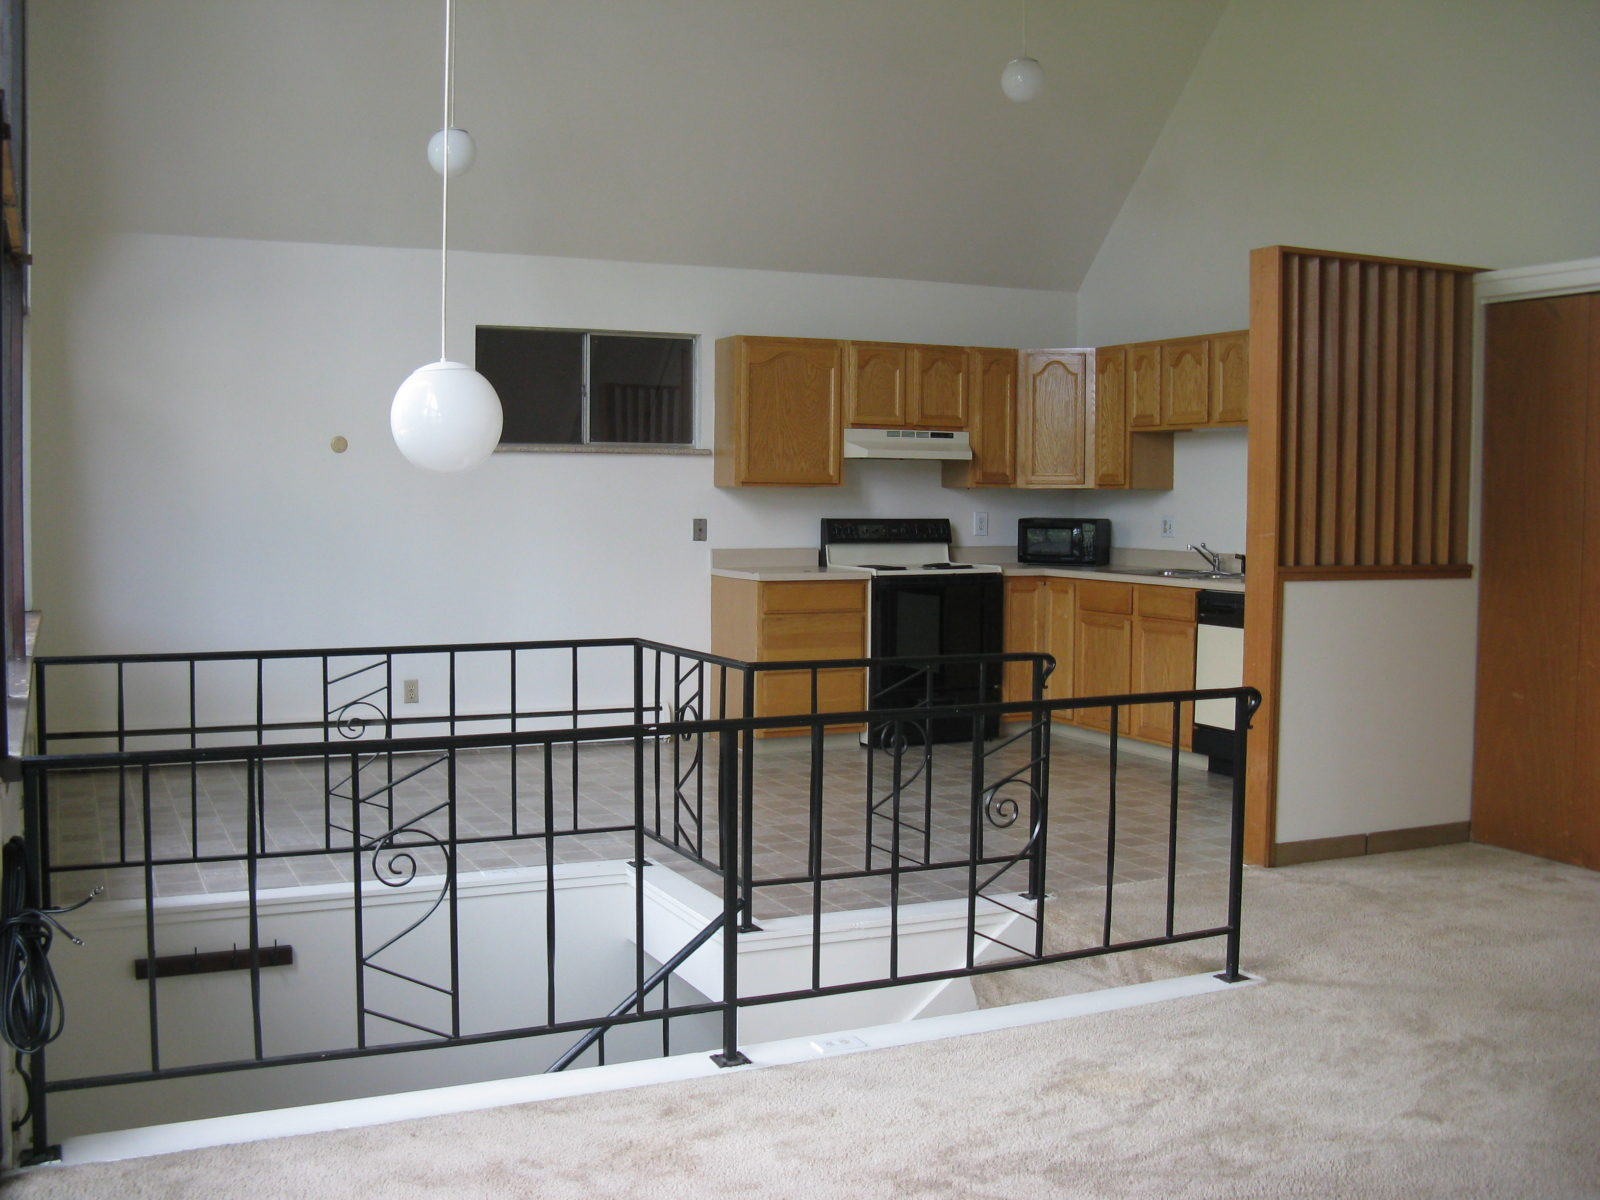 694 Kitchen from Living Room